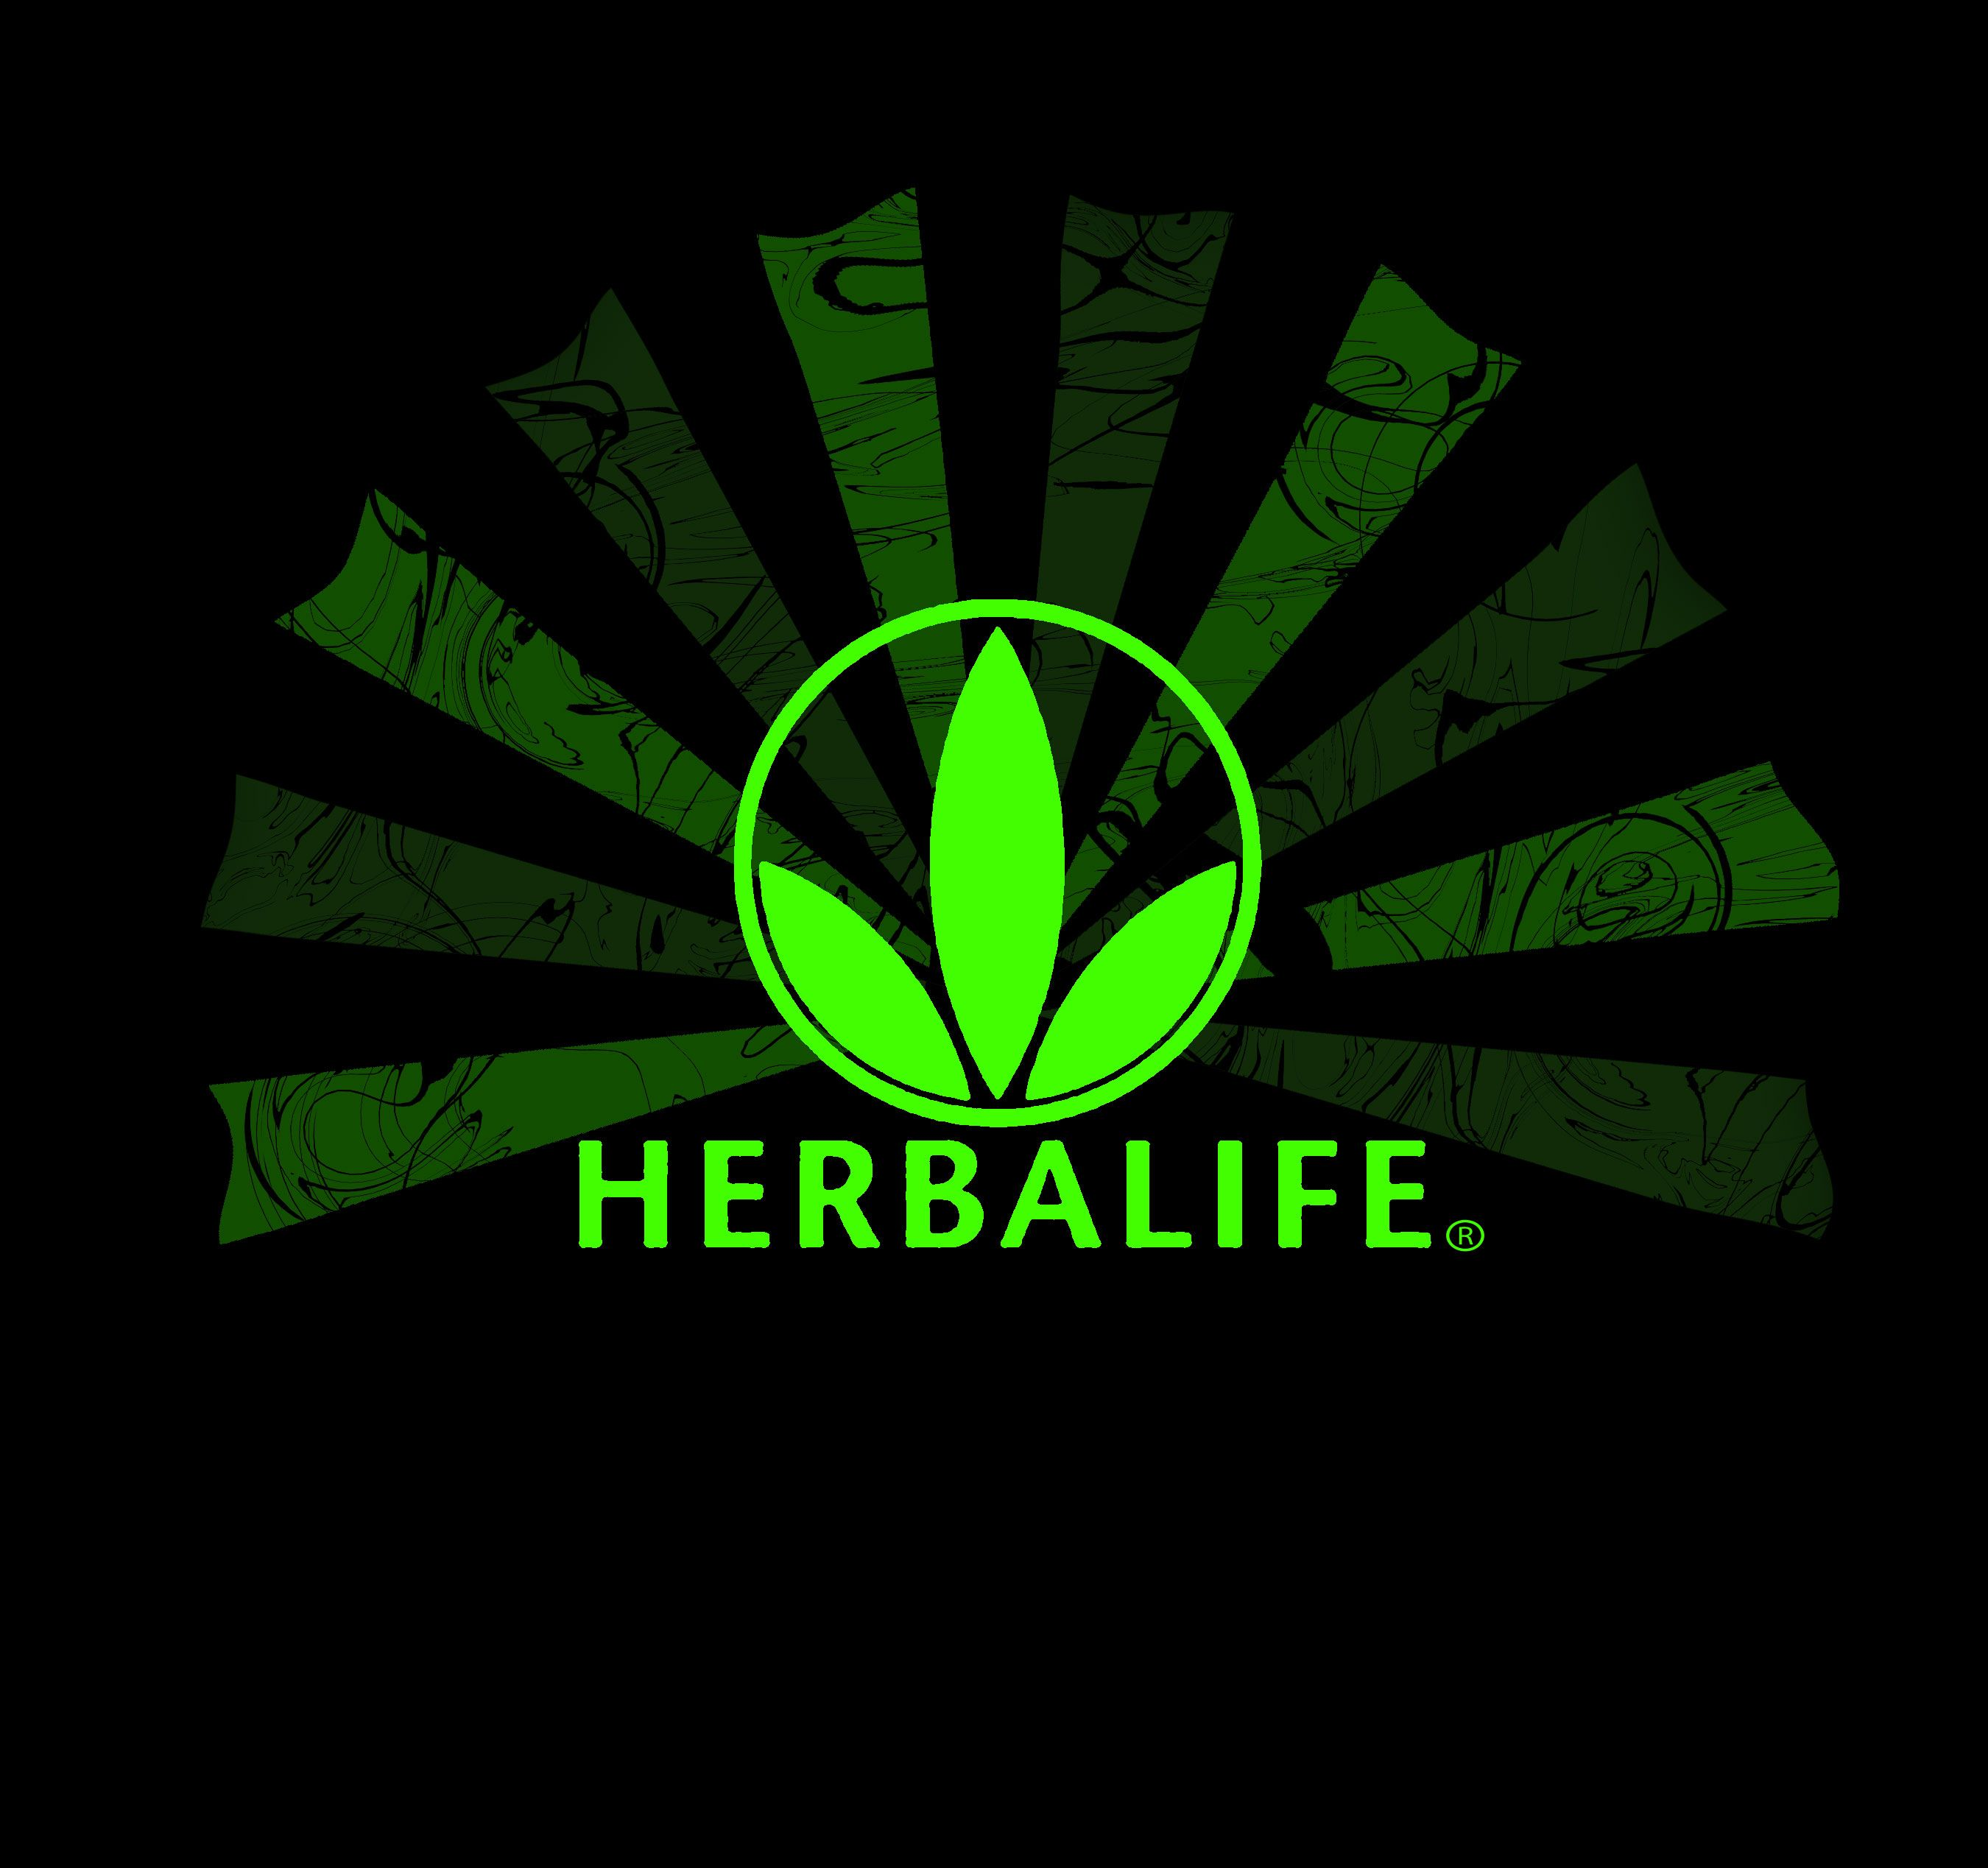 herbalife artwork | nutricionsaludable-libertadfinanciera.webs.com ...